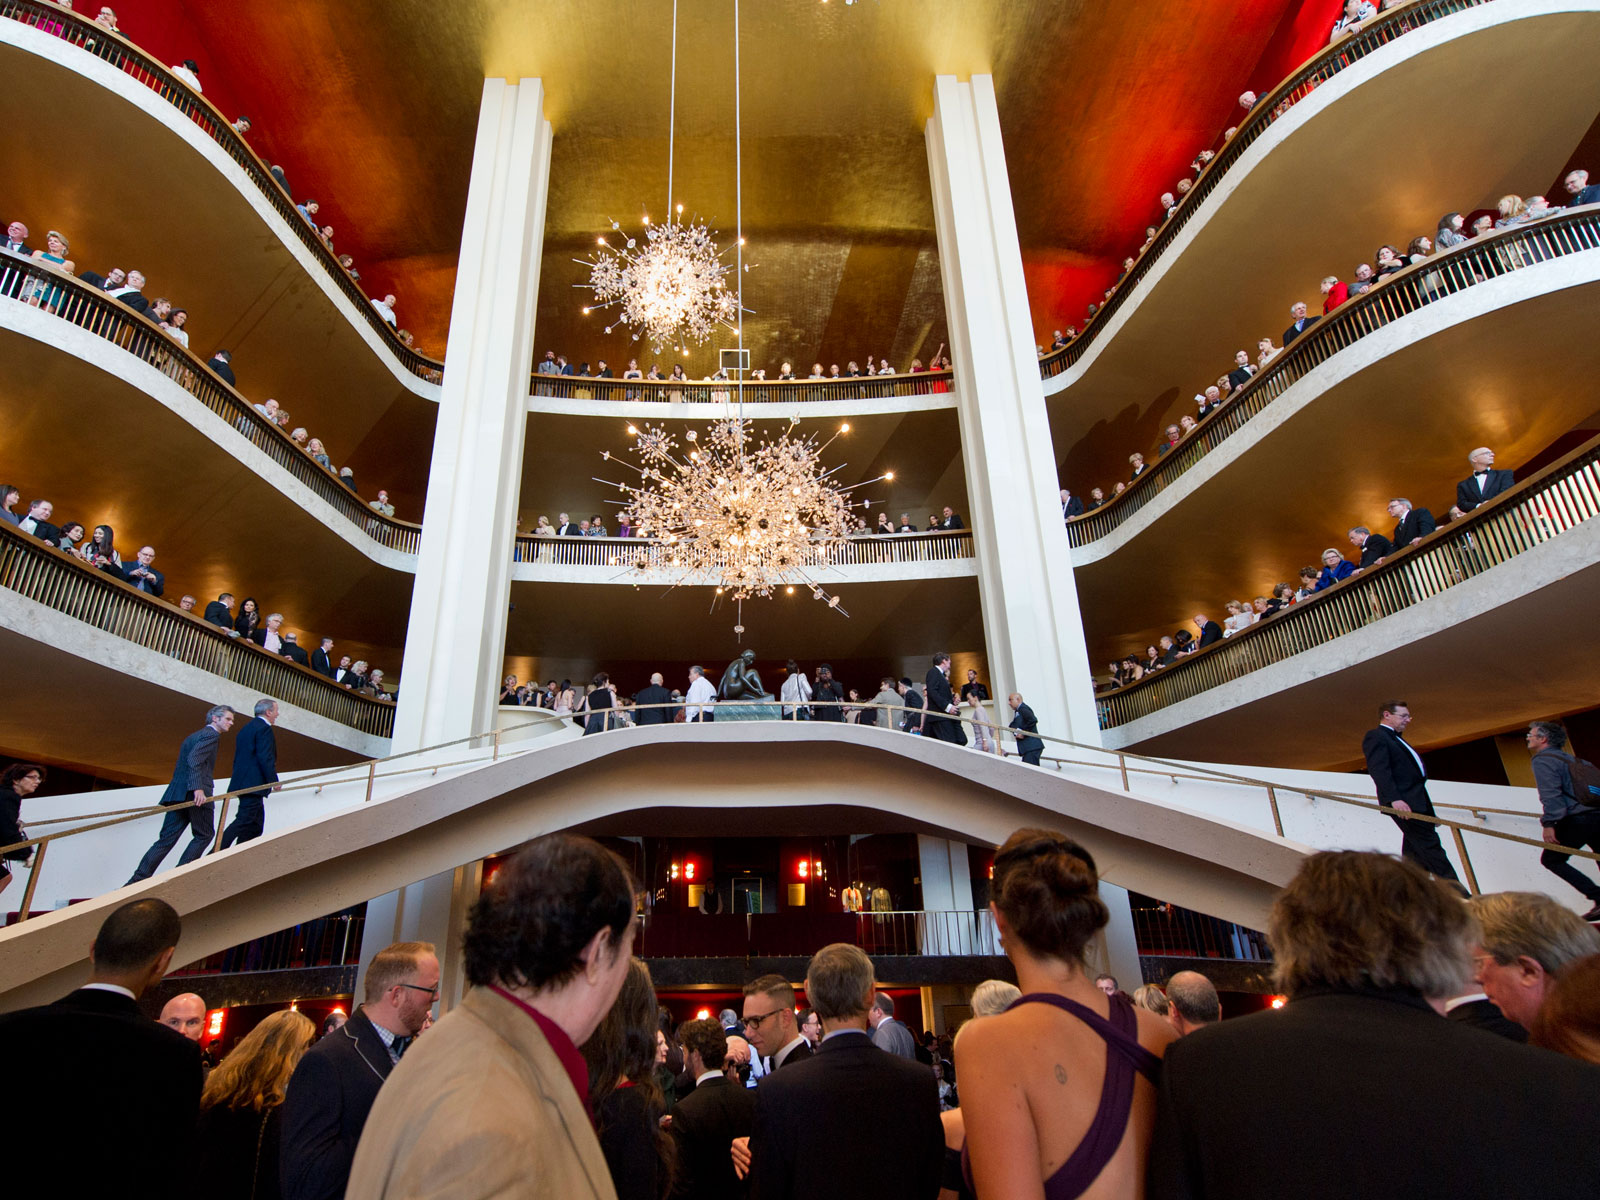 Lobby of The Metropolitan Opera before a performance.